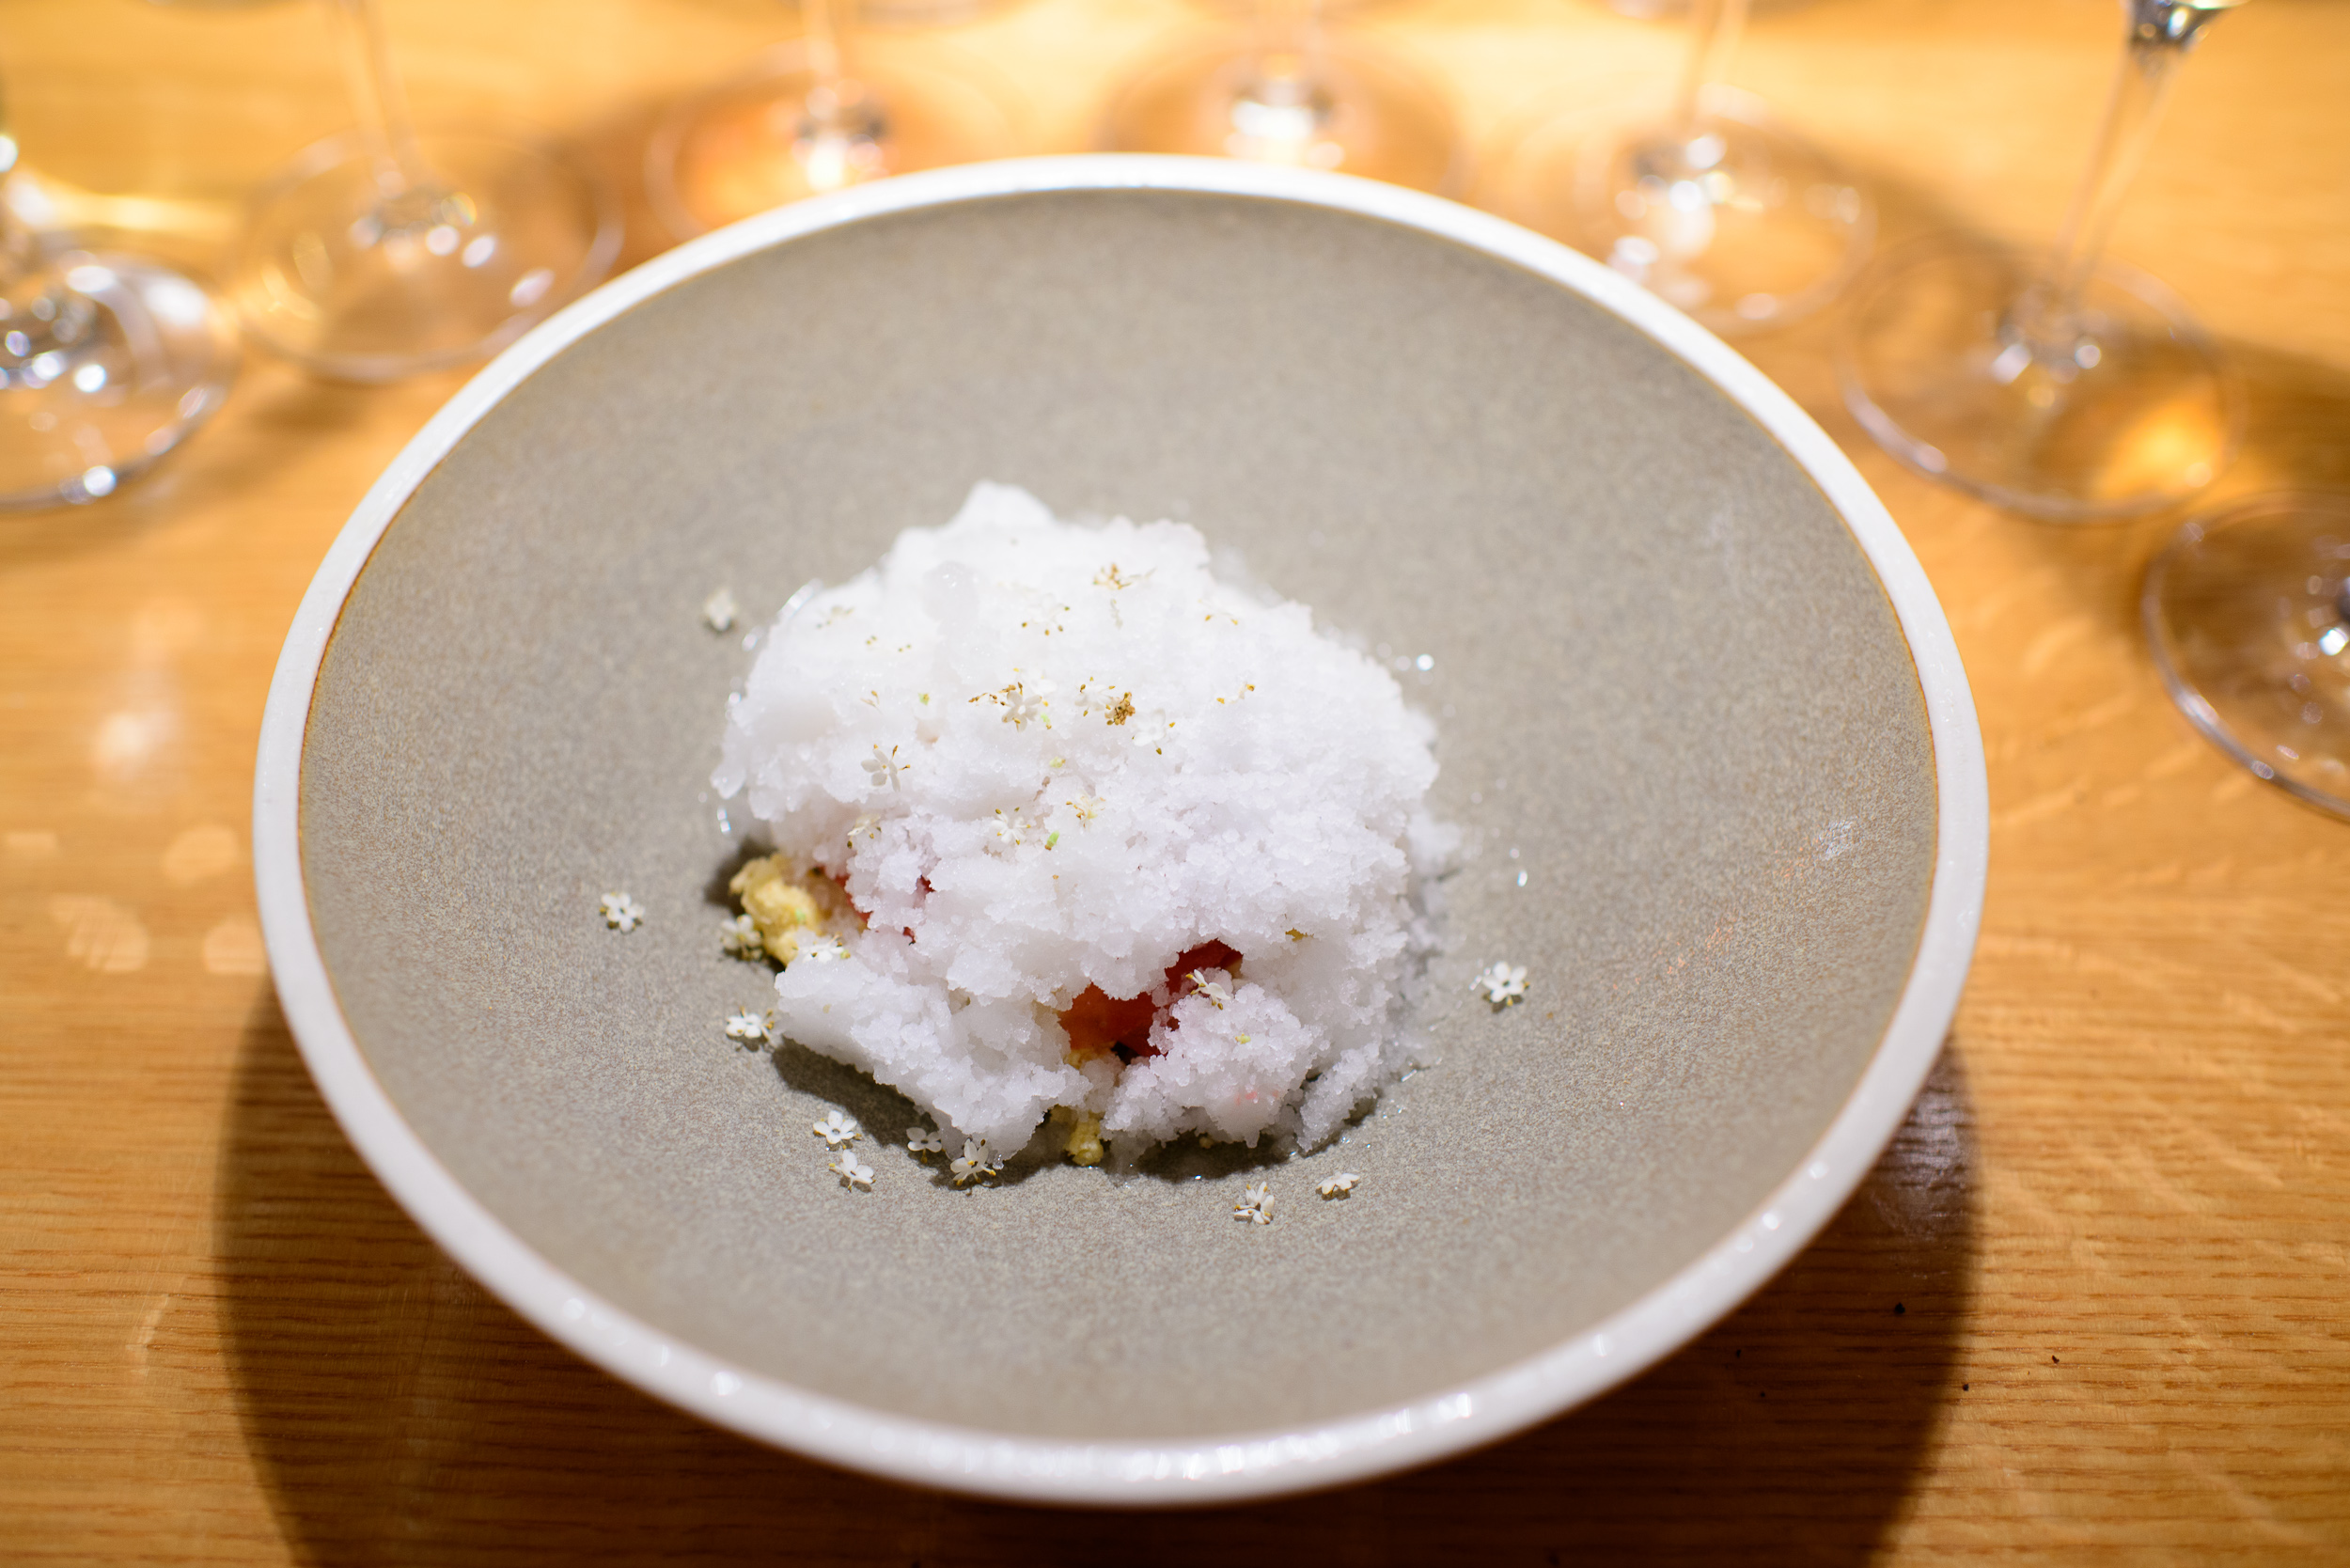 8th Course: Elderflower and rhubarb